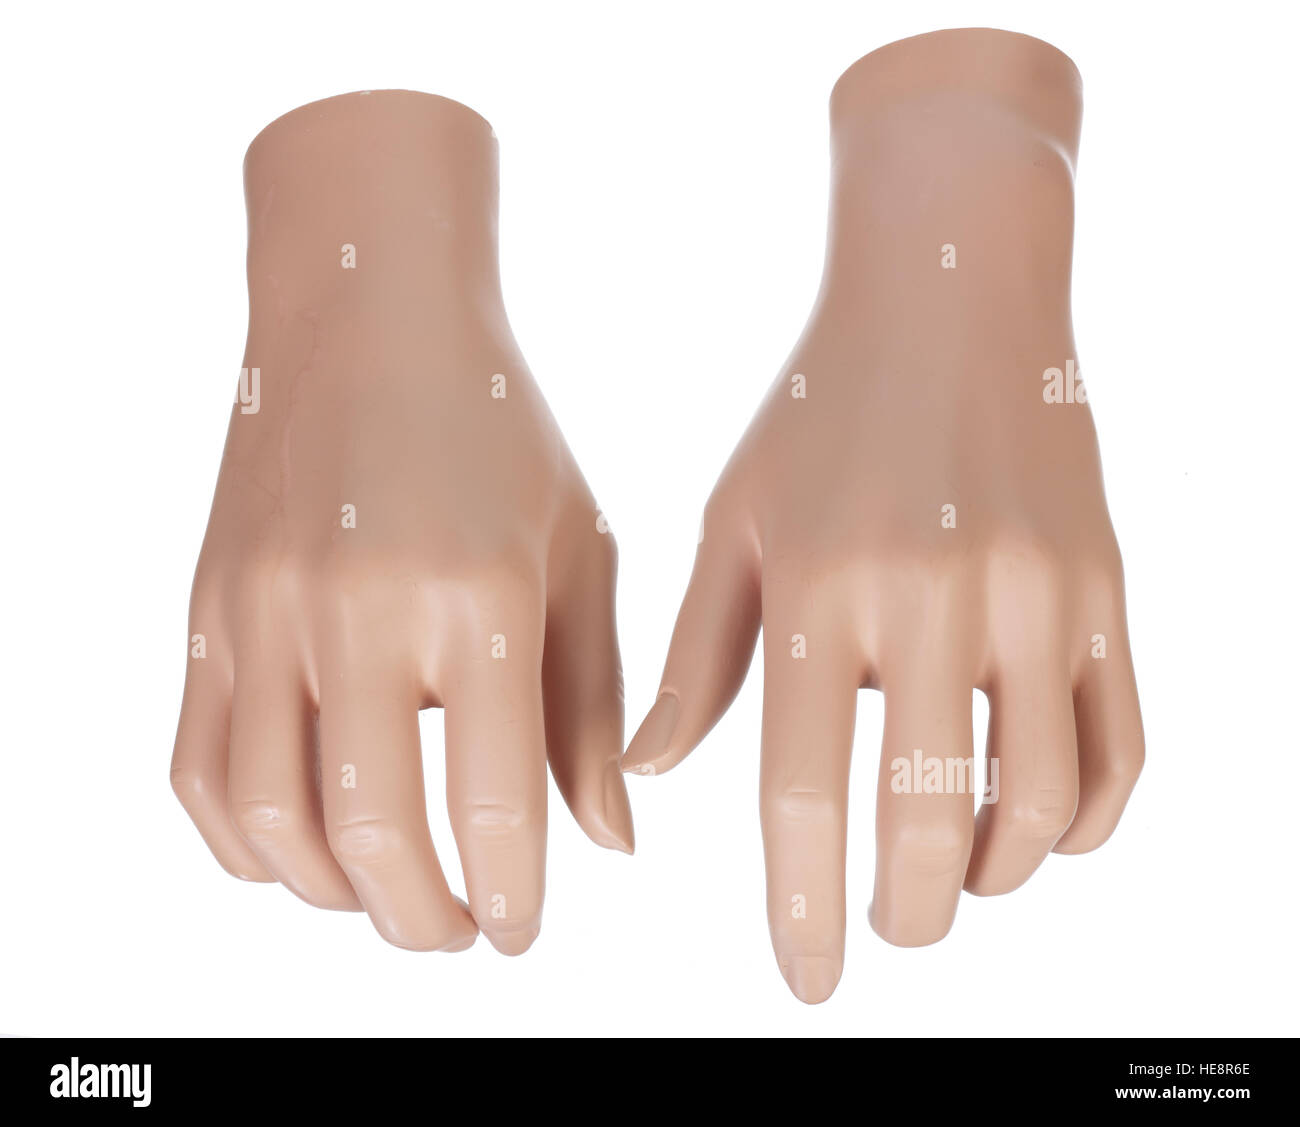 Mannequin Hands Stock Photos & Mannequin Hands Stock Images - Page 2 ...